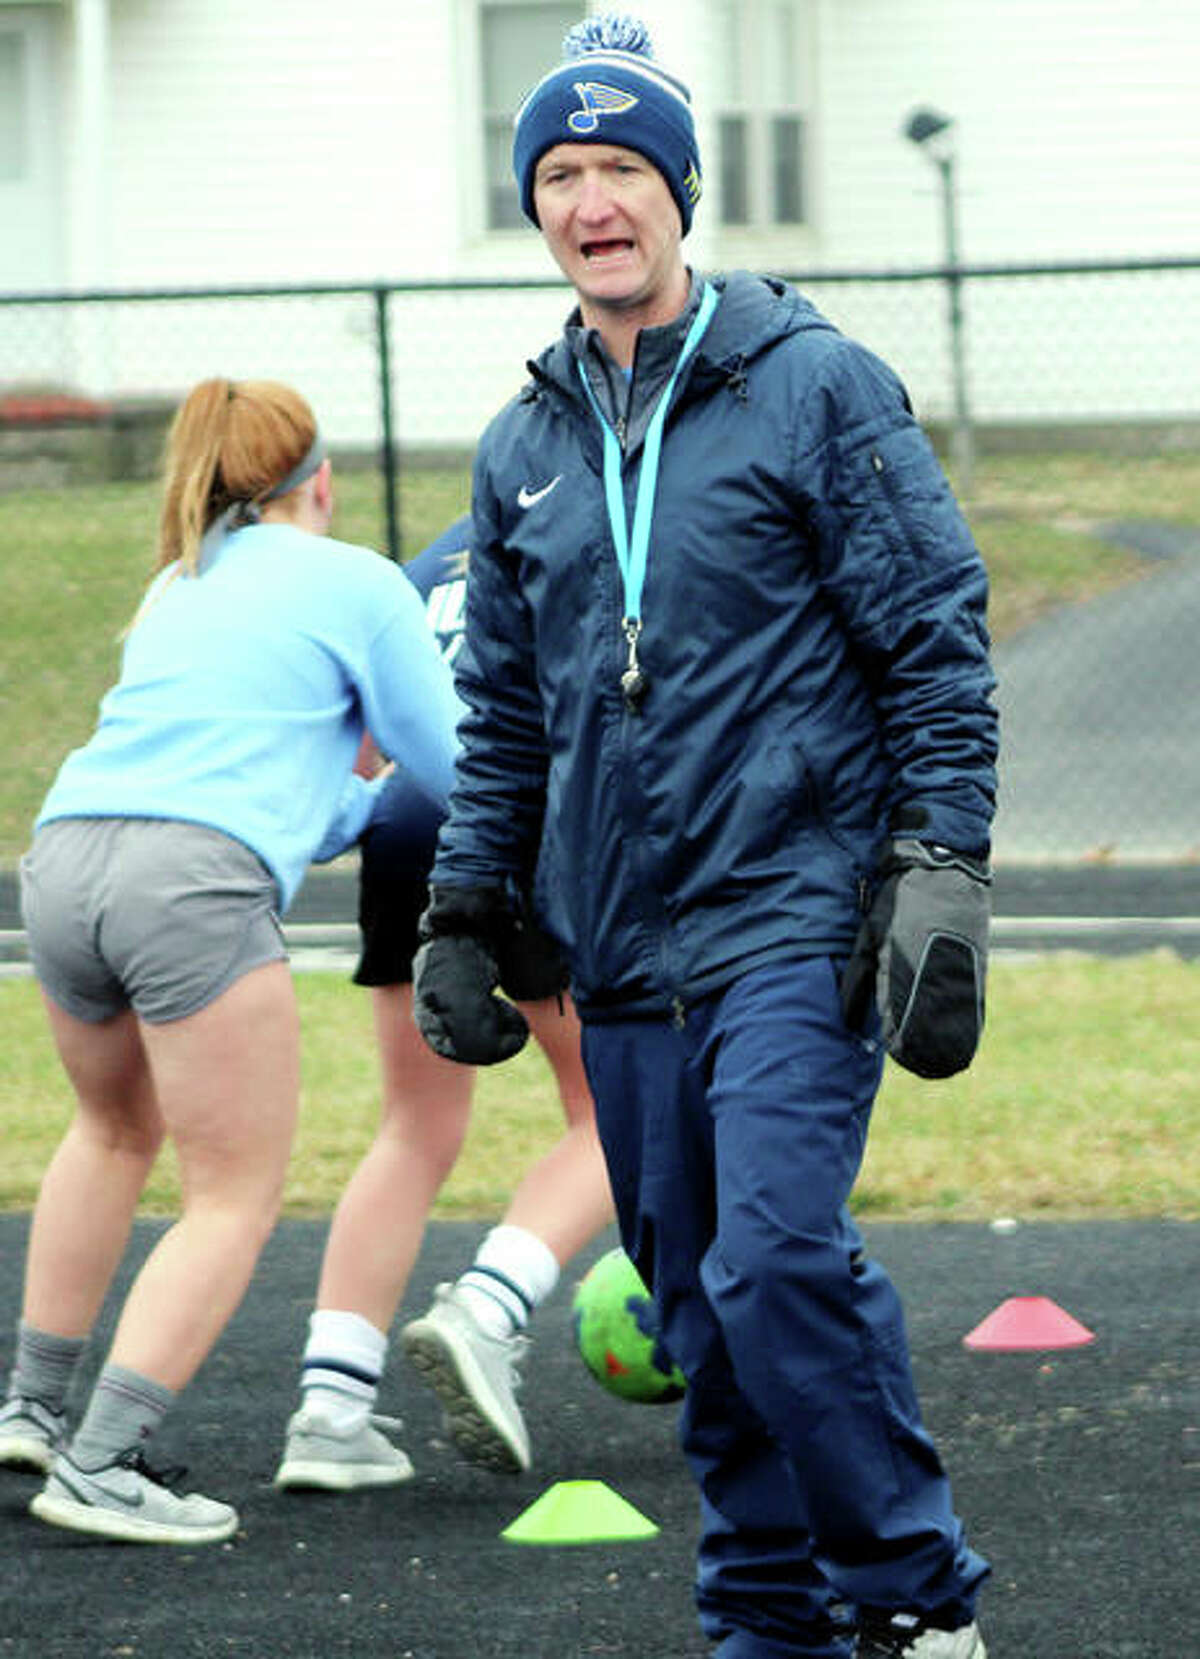 Scott Burney shouts instructions during girls soccer practice in March 2020 in Jerseyville. Burney, also the long-time boys soccer coach at Jersey, was preparing for his first season with the girls team after adding it to his duties at JCHS when the coronavirus shutdown struck.